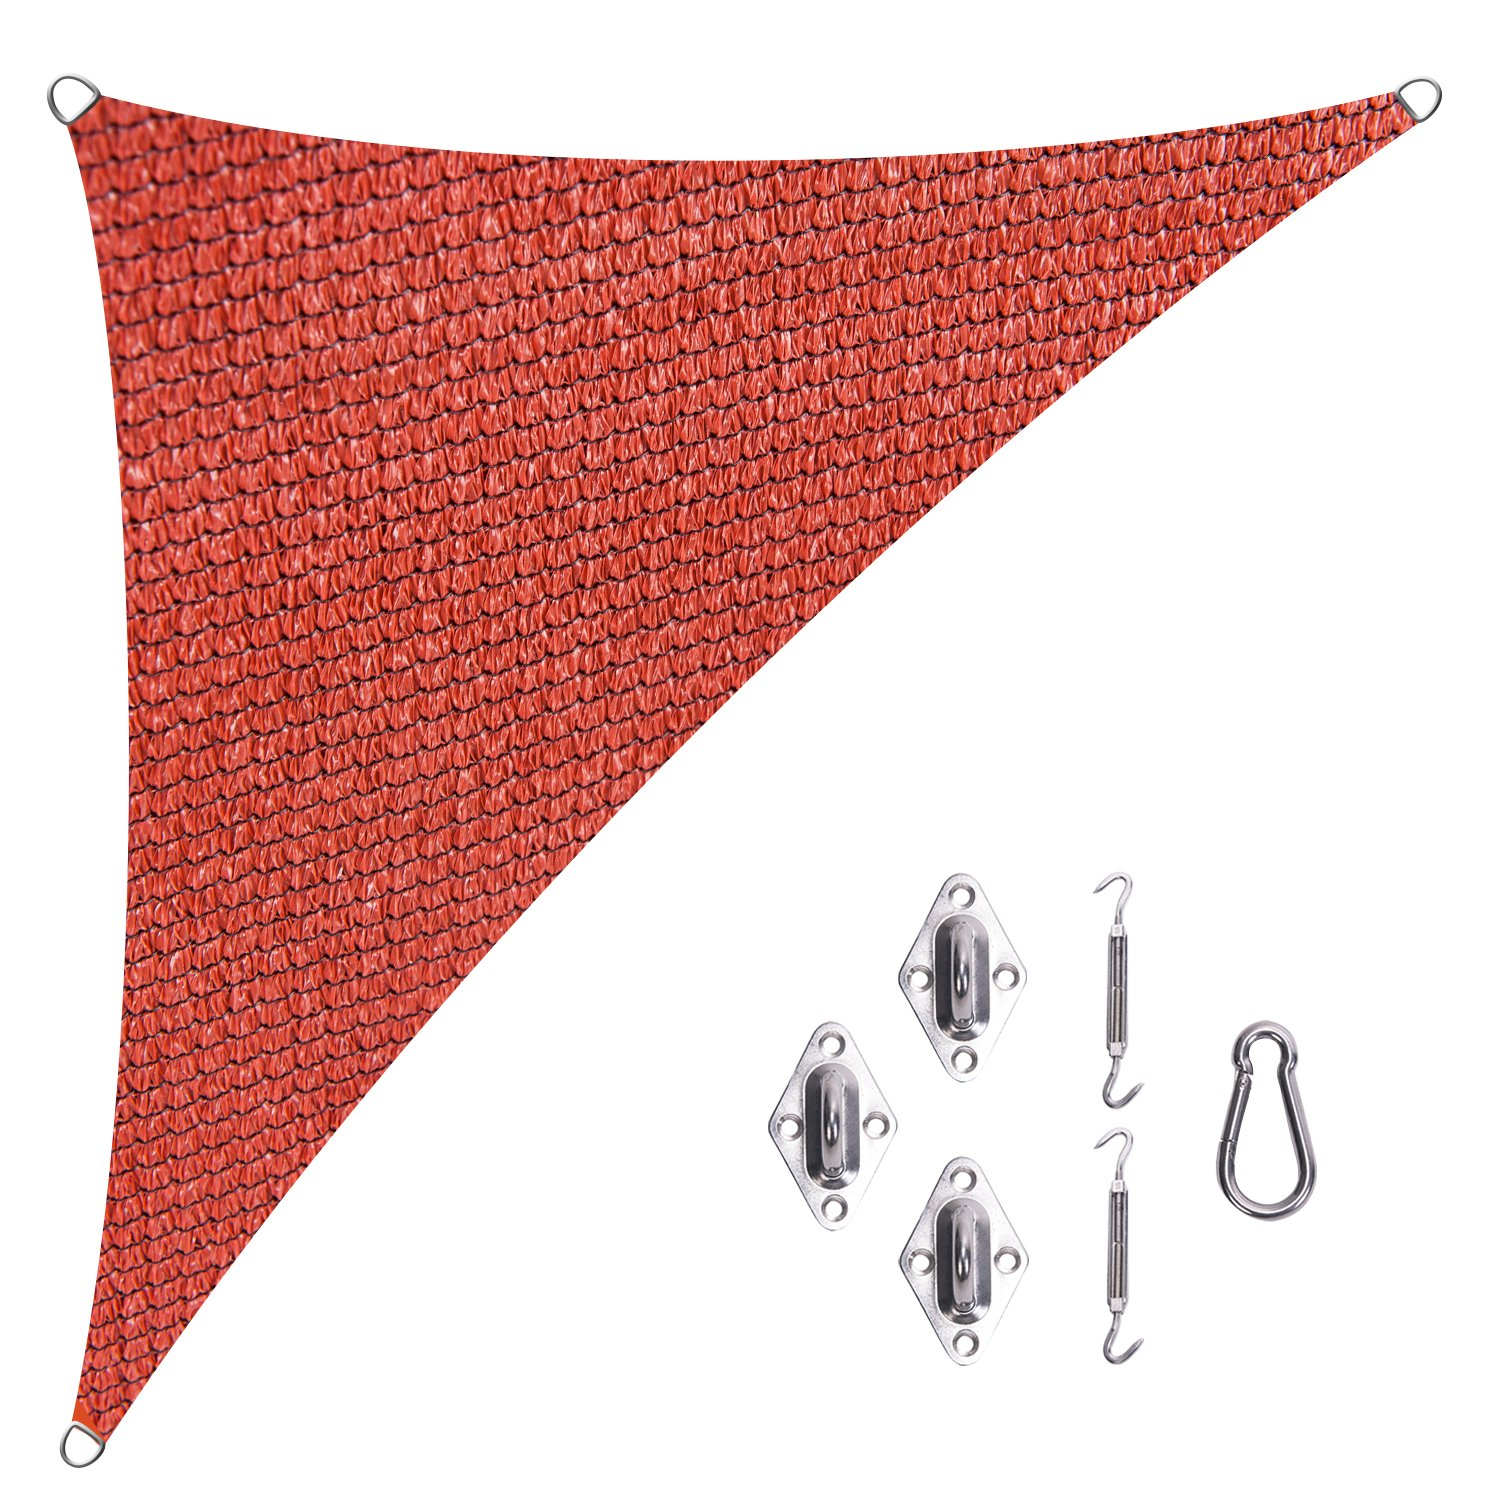 Cool Area Right Triangle 16'5'' X 16'5'' X 22'11'' Sun Shade Sail with Stainless Steel Hardware Kit, UV Block Fabric Patio Patio Shade Sail in Color Terra